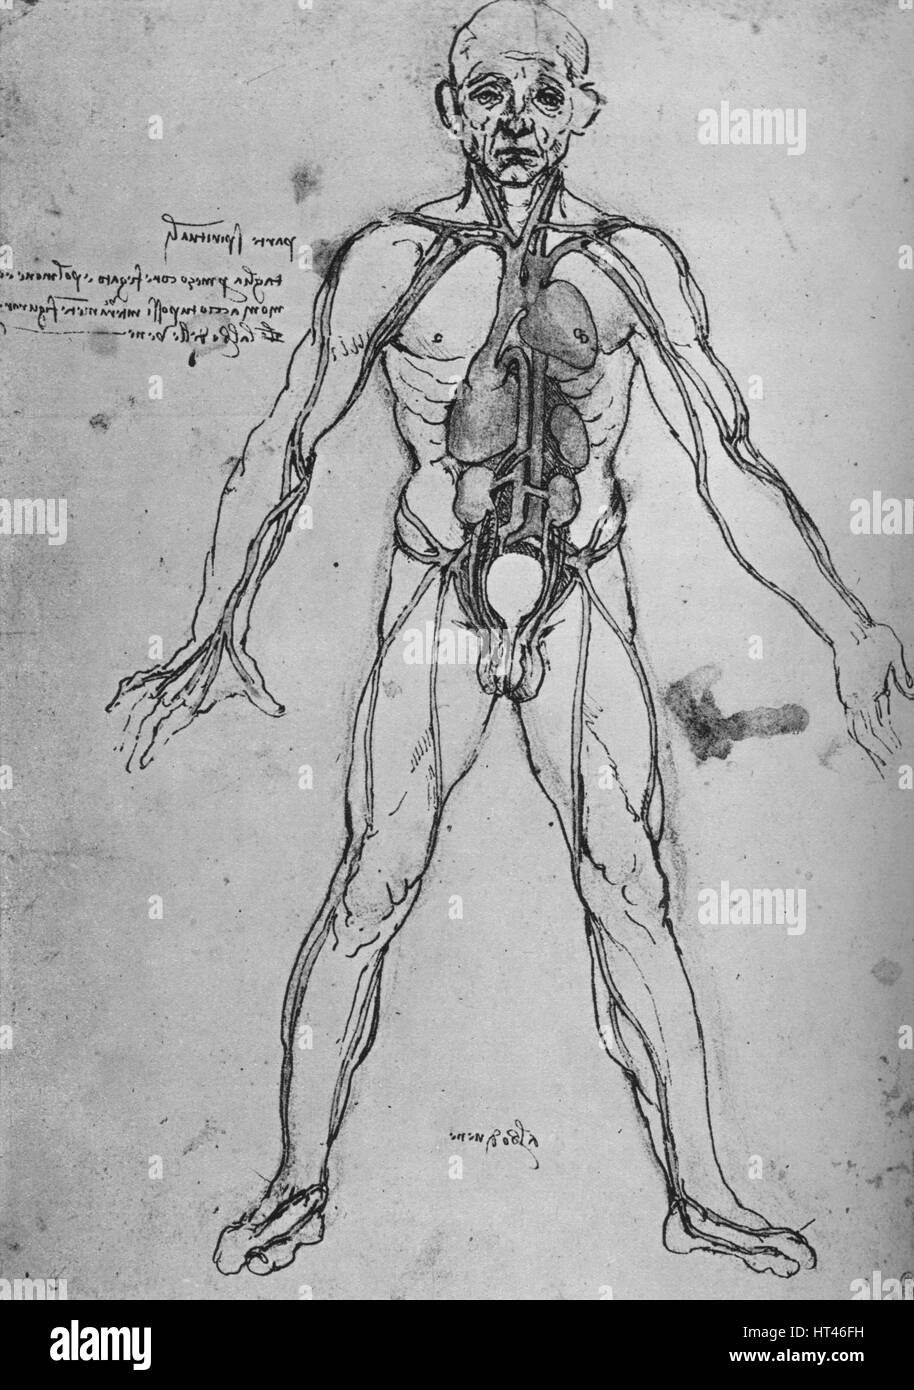 Man Drawn As An Anatomical Figure To Show The Heart Lungs And Main